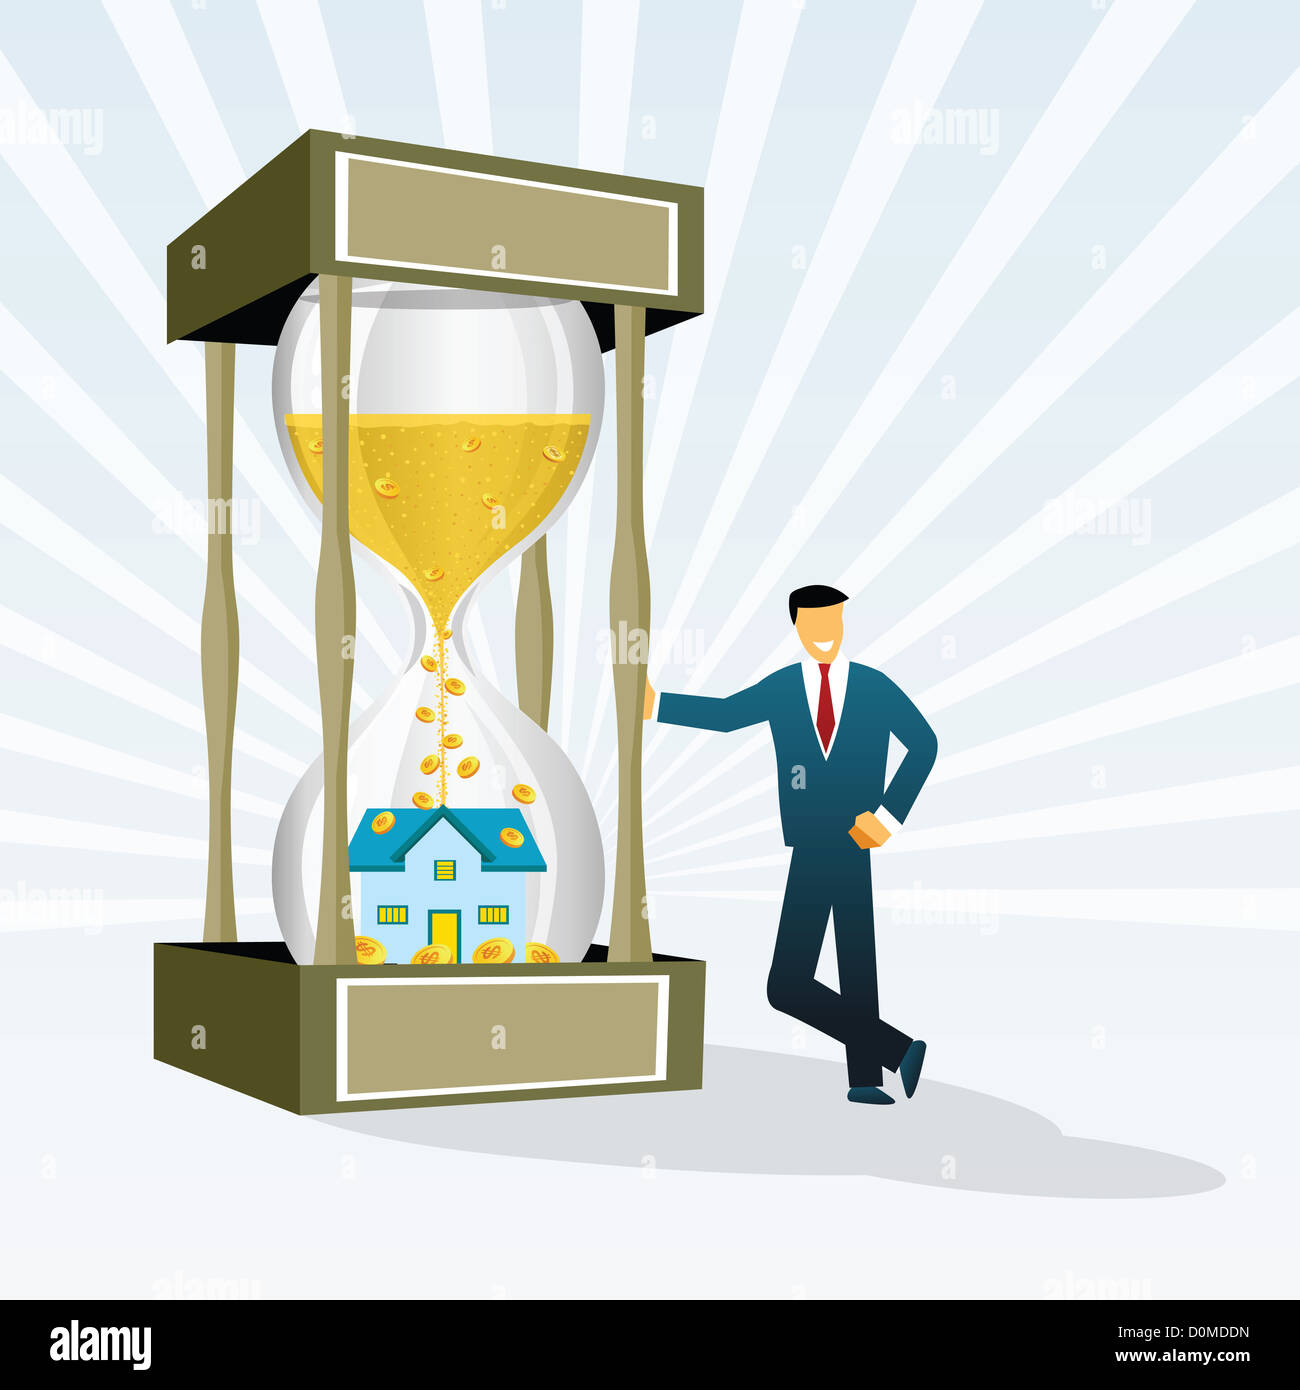 Real estate agent standing beside a giant hourglass - Stock Image